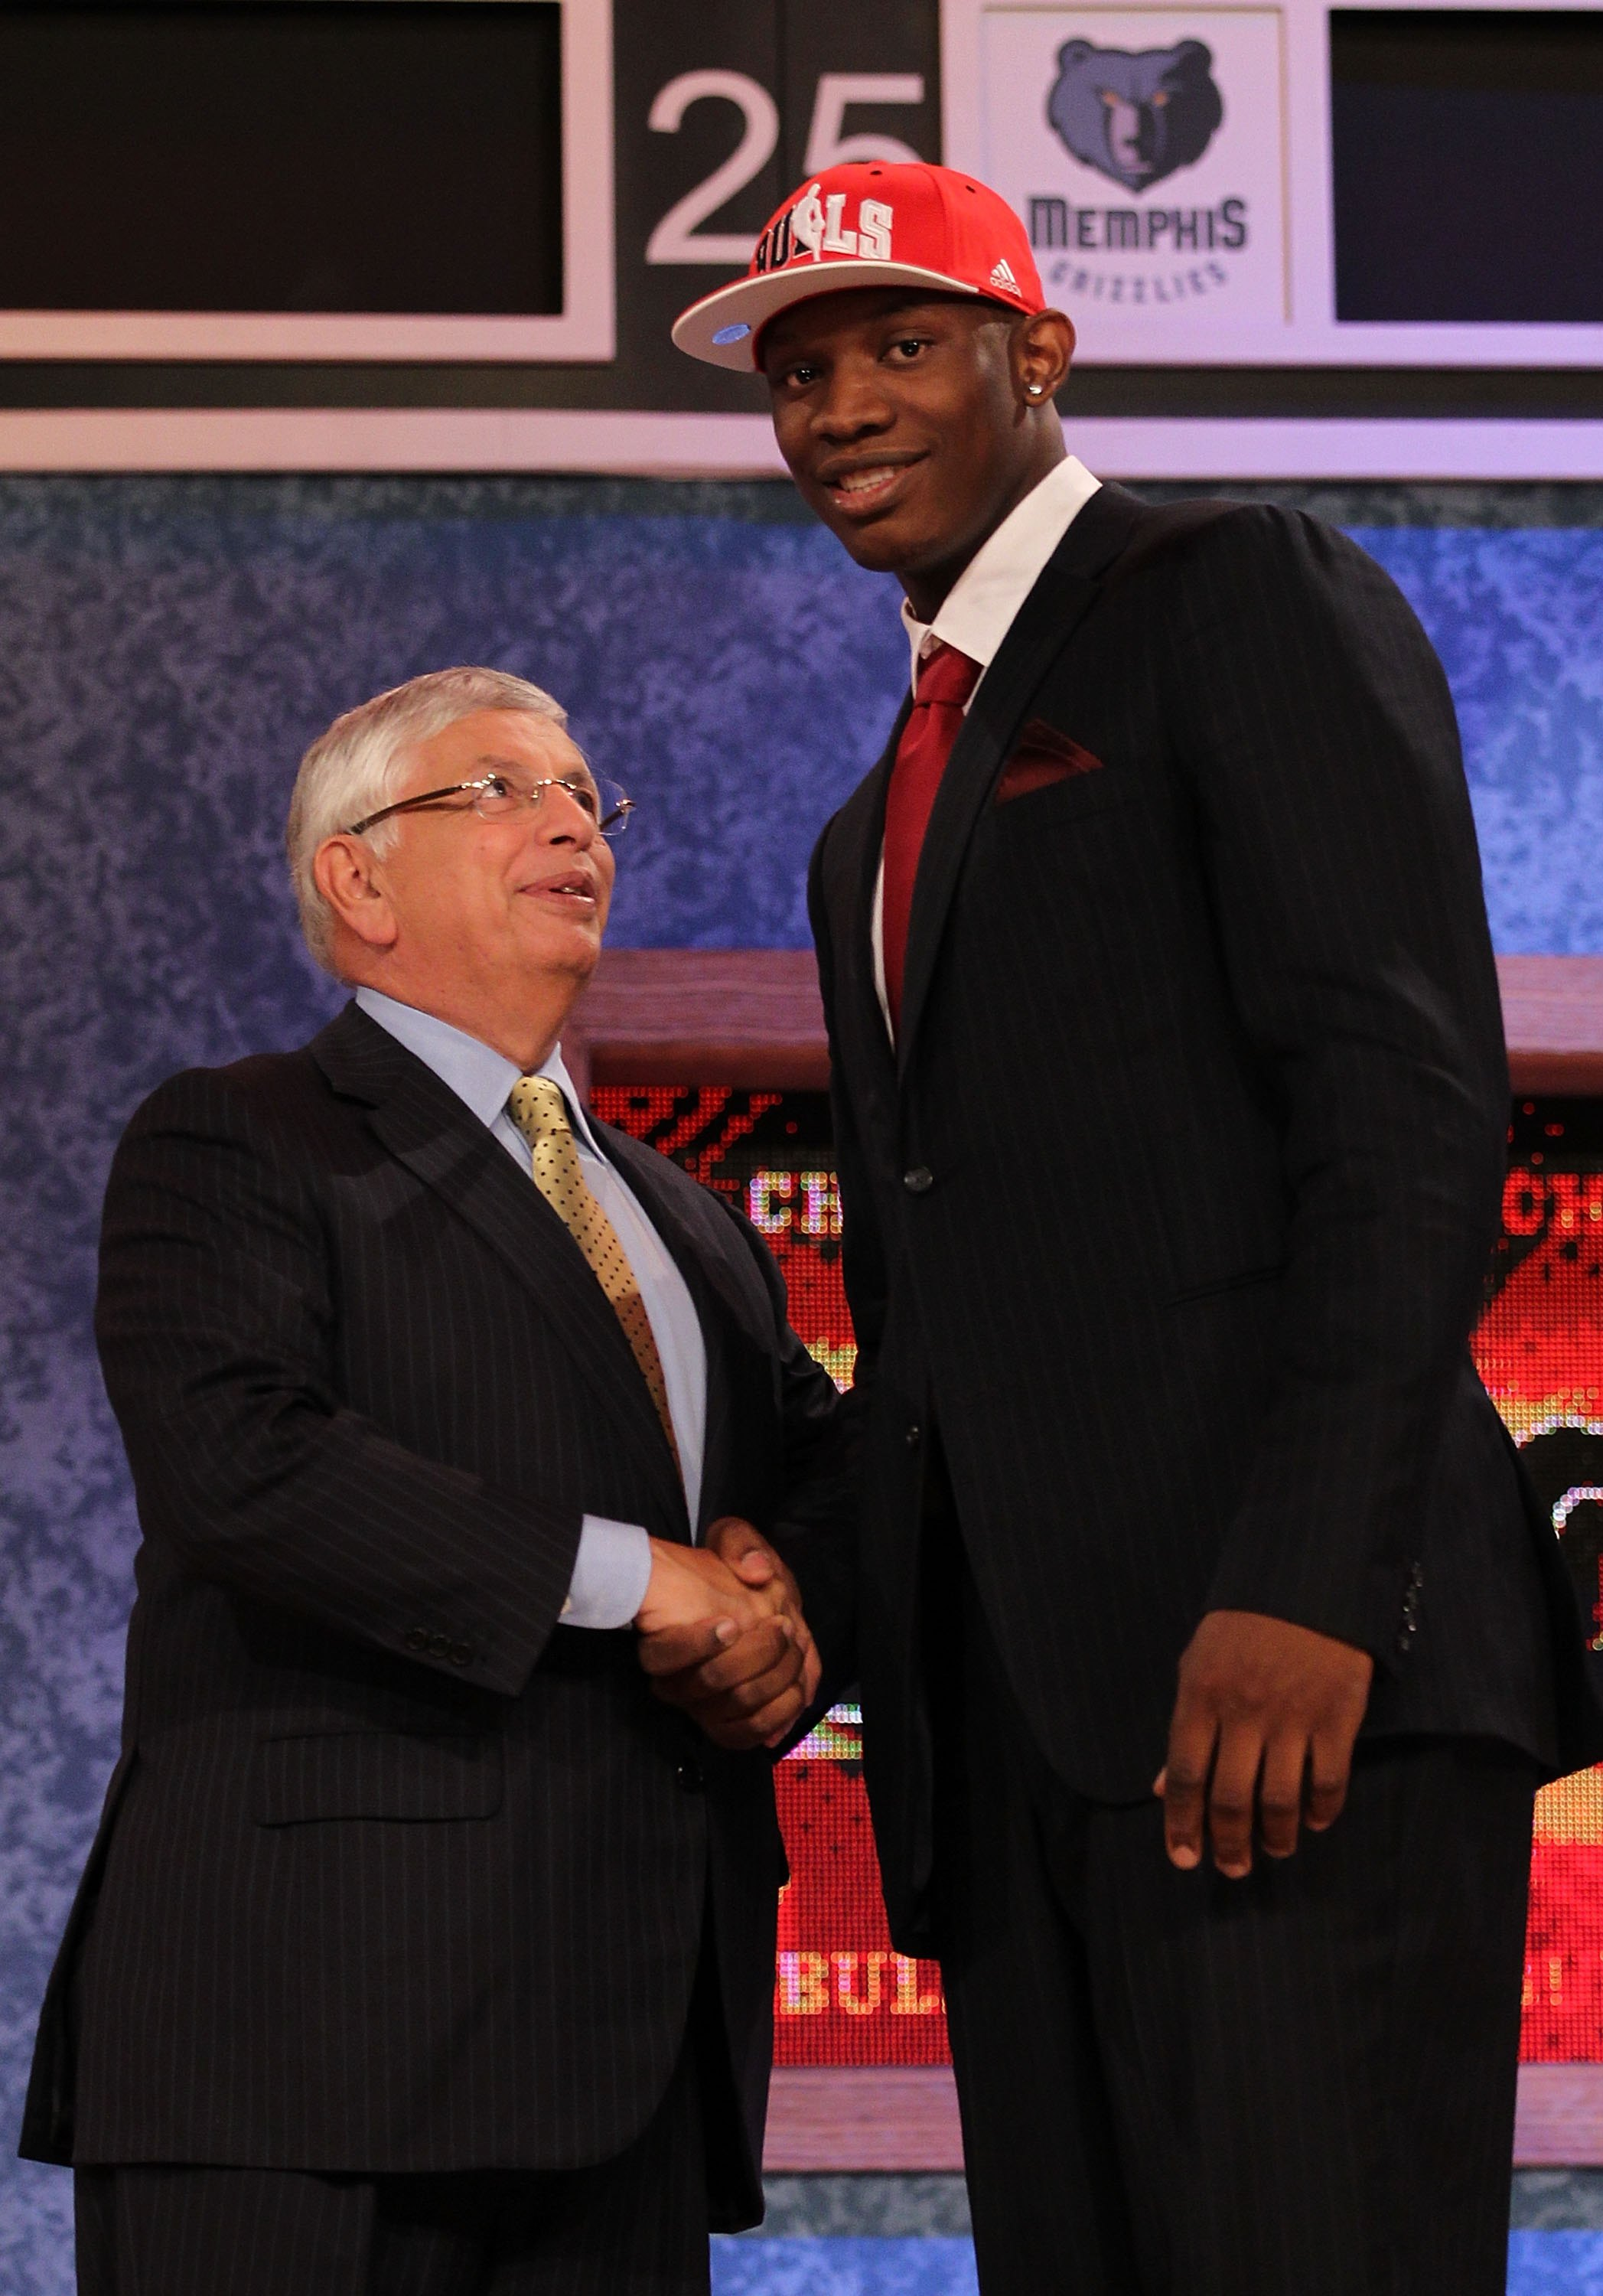 NEW YORK - JUNE 24:  Kevin Seraphin stands with NBA Commisioner David Stern after being drafted seventeenth by  The Chicago Bulls at Madison Square Garden on June 24, 2010 in New York, New York.  (Photo by Al Bello/Getty Images)